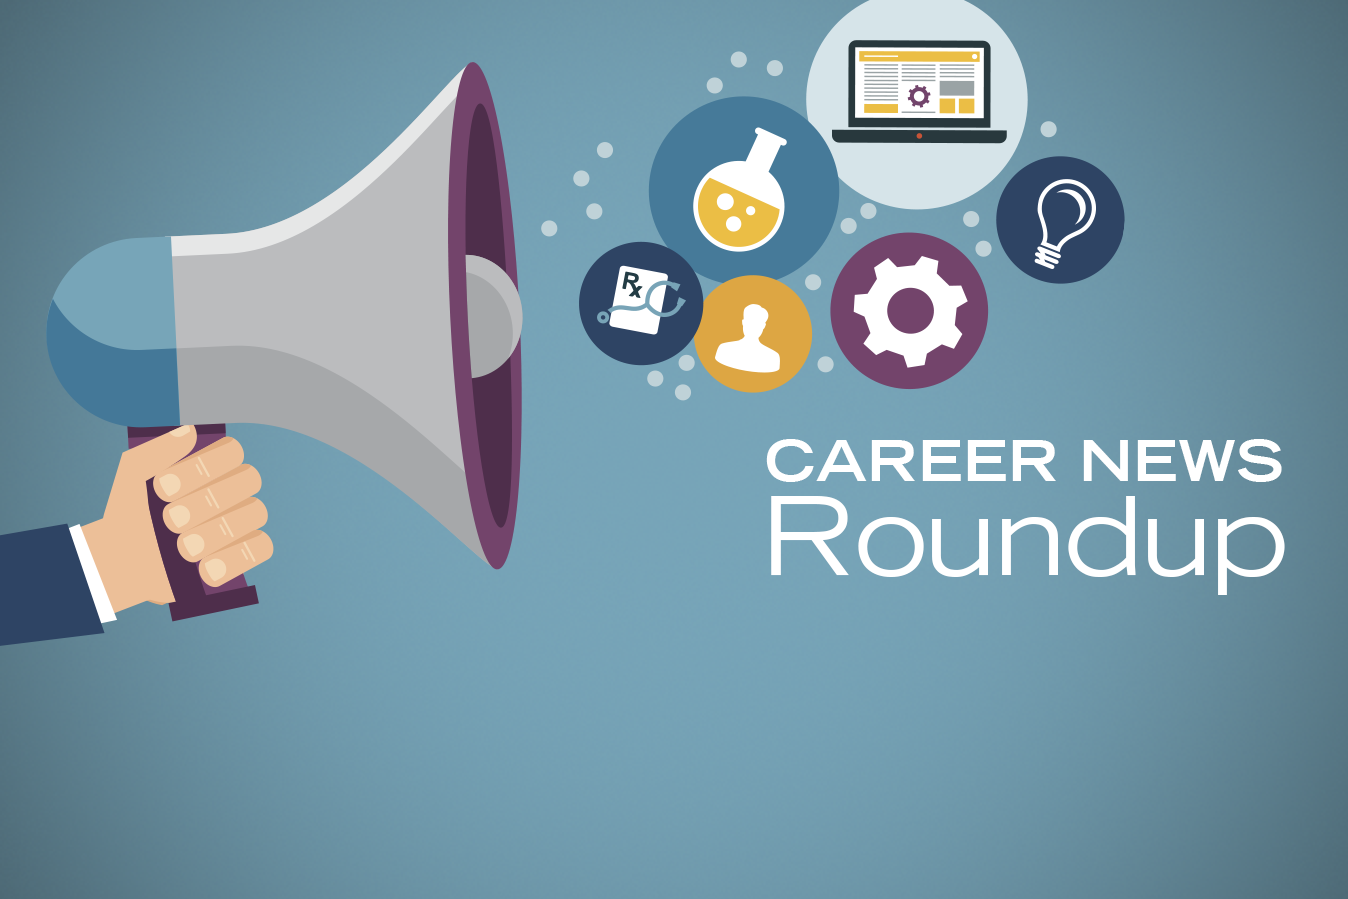 Career News Roundup: March 2016 infographic with icons